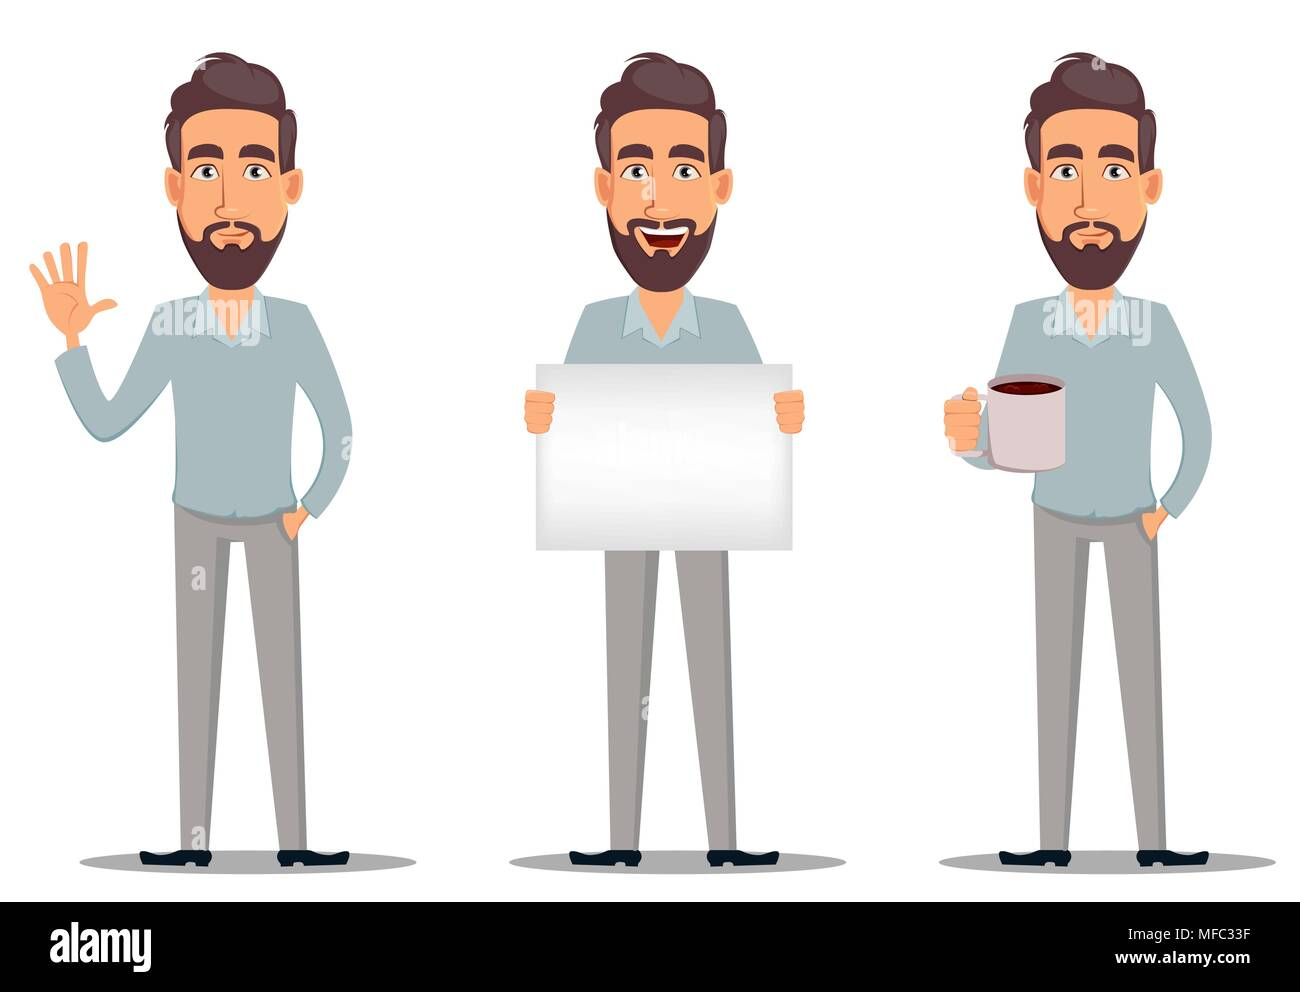 Cartoon Man With Drink Stock Photos Amp Cartoon Man With